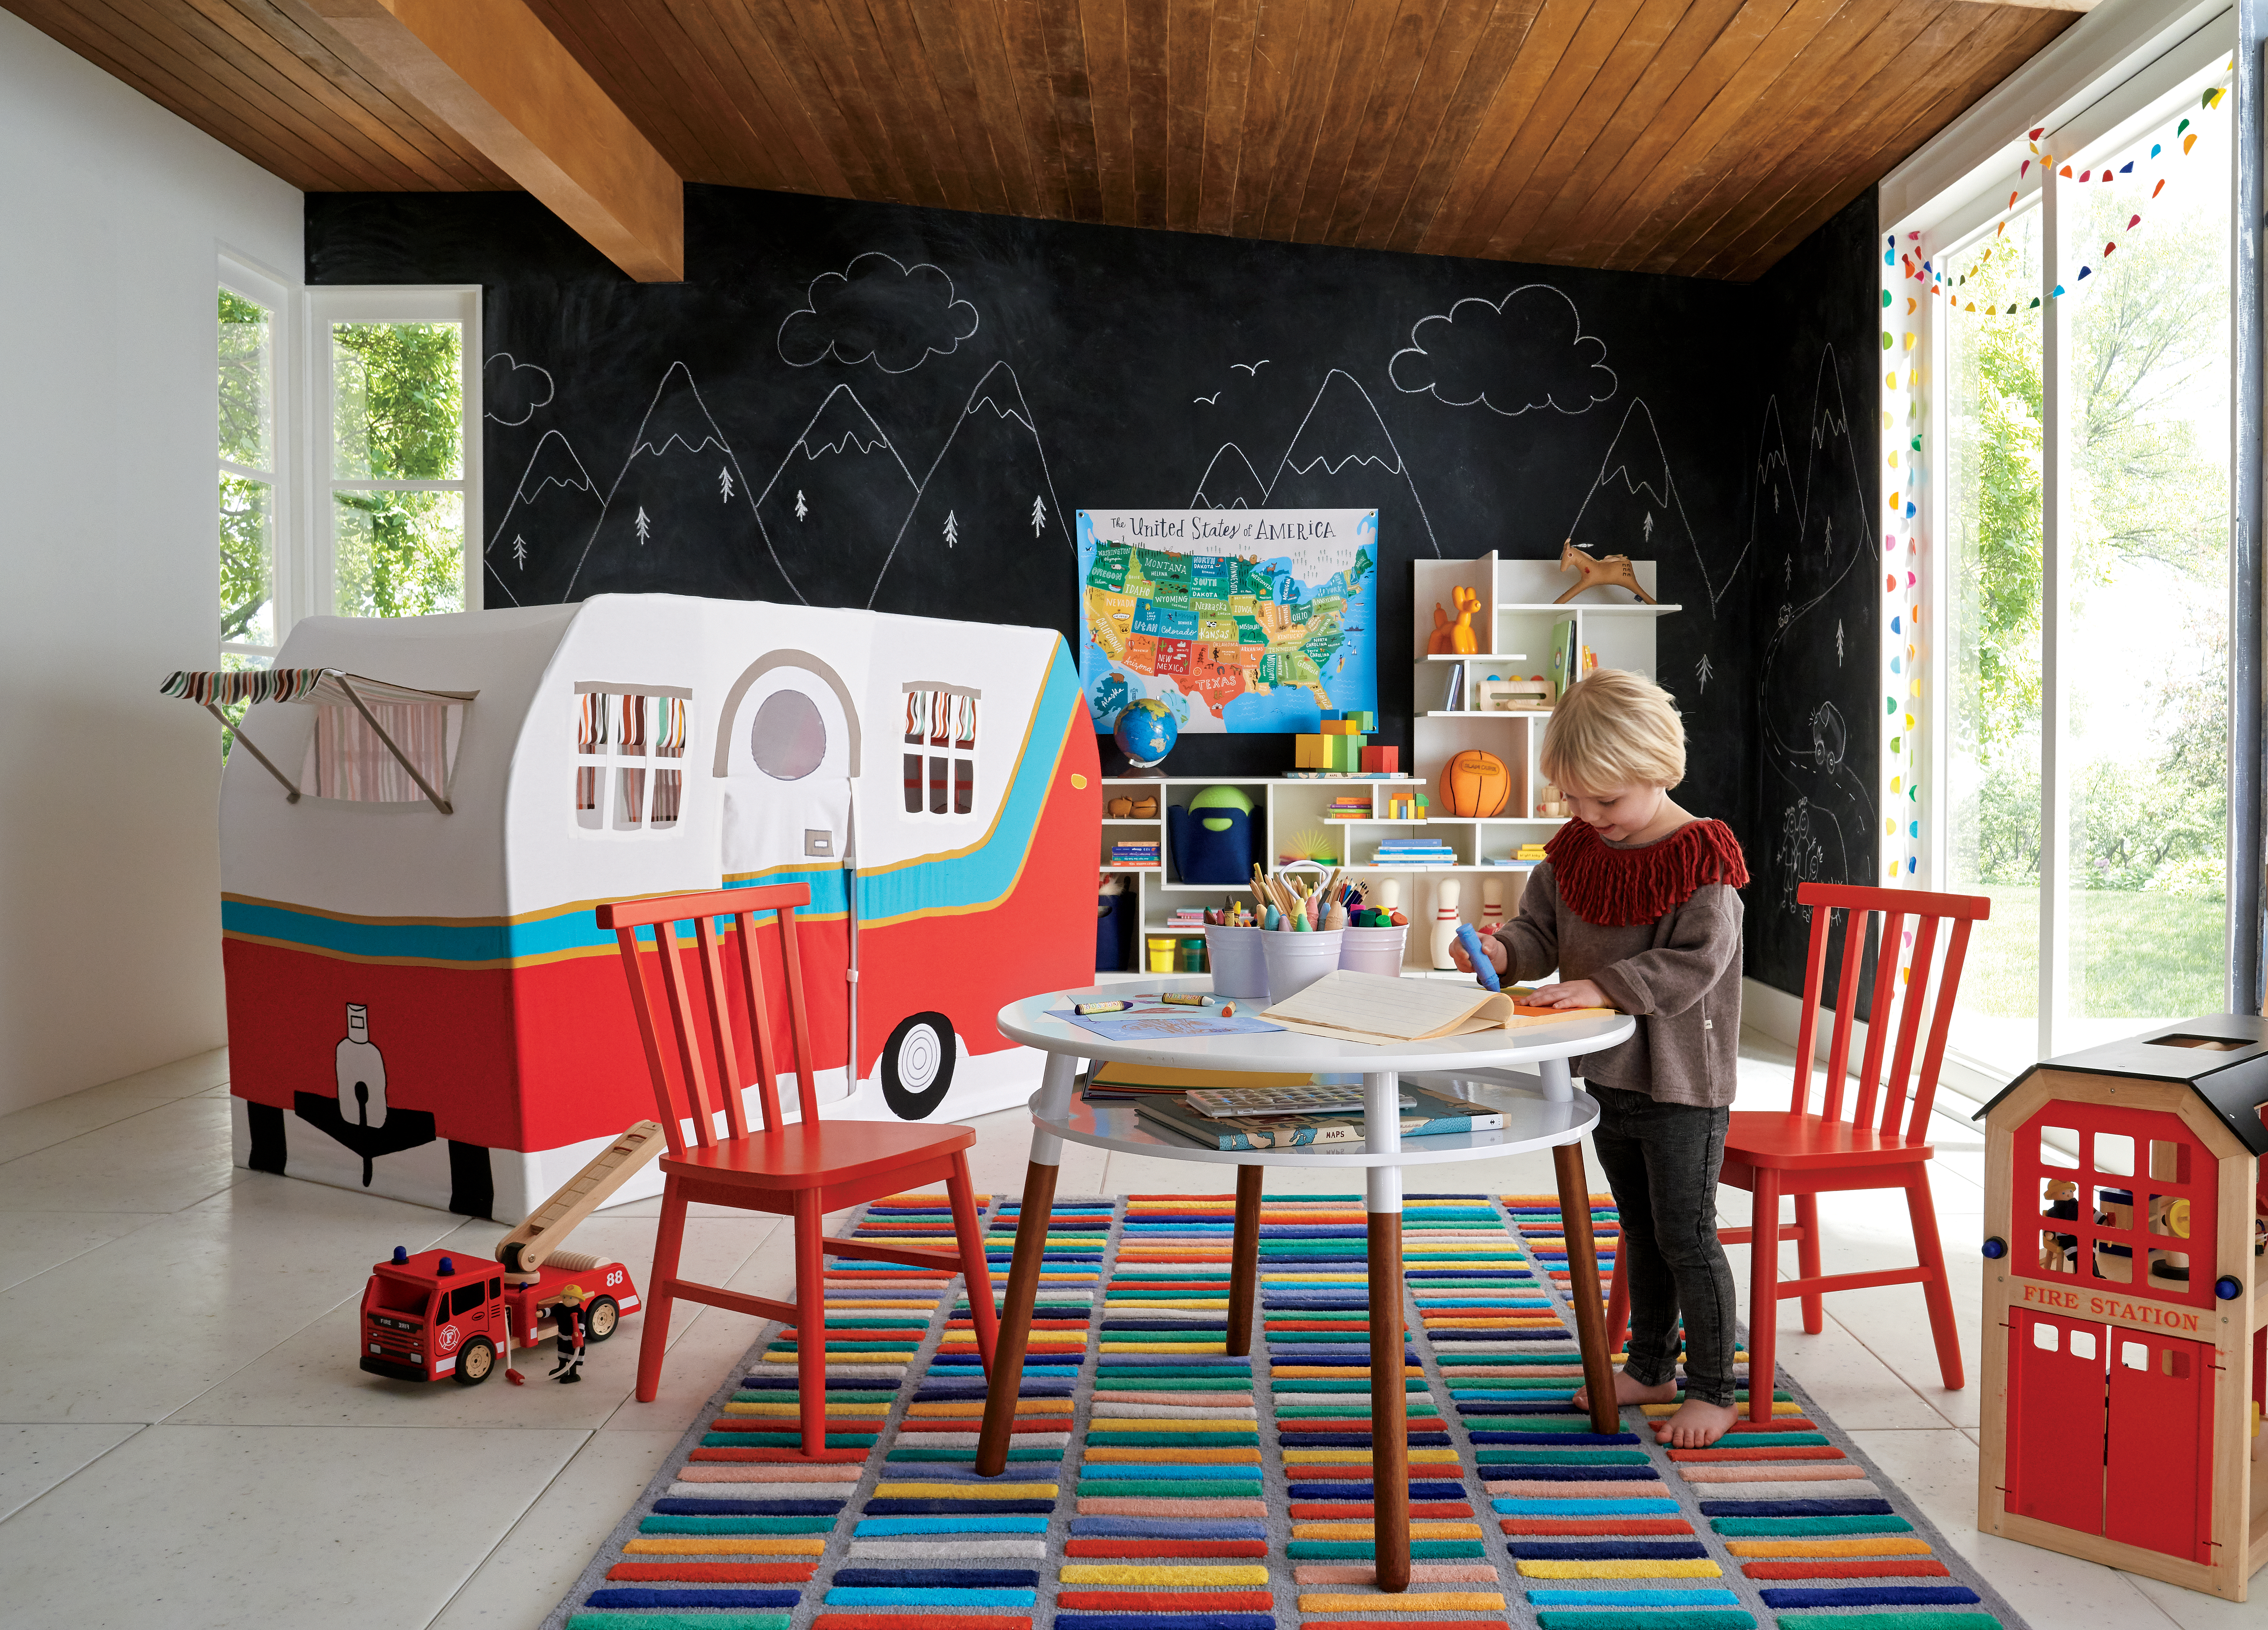 Groovy Crate Barrel Takes On Land Of Nod Becomes Crate Kids Gmtry Best Dining Table And Chair Ideas Images Gmtryco